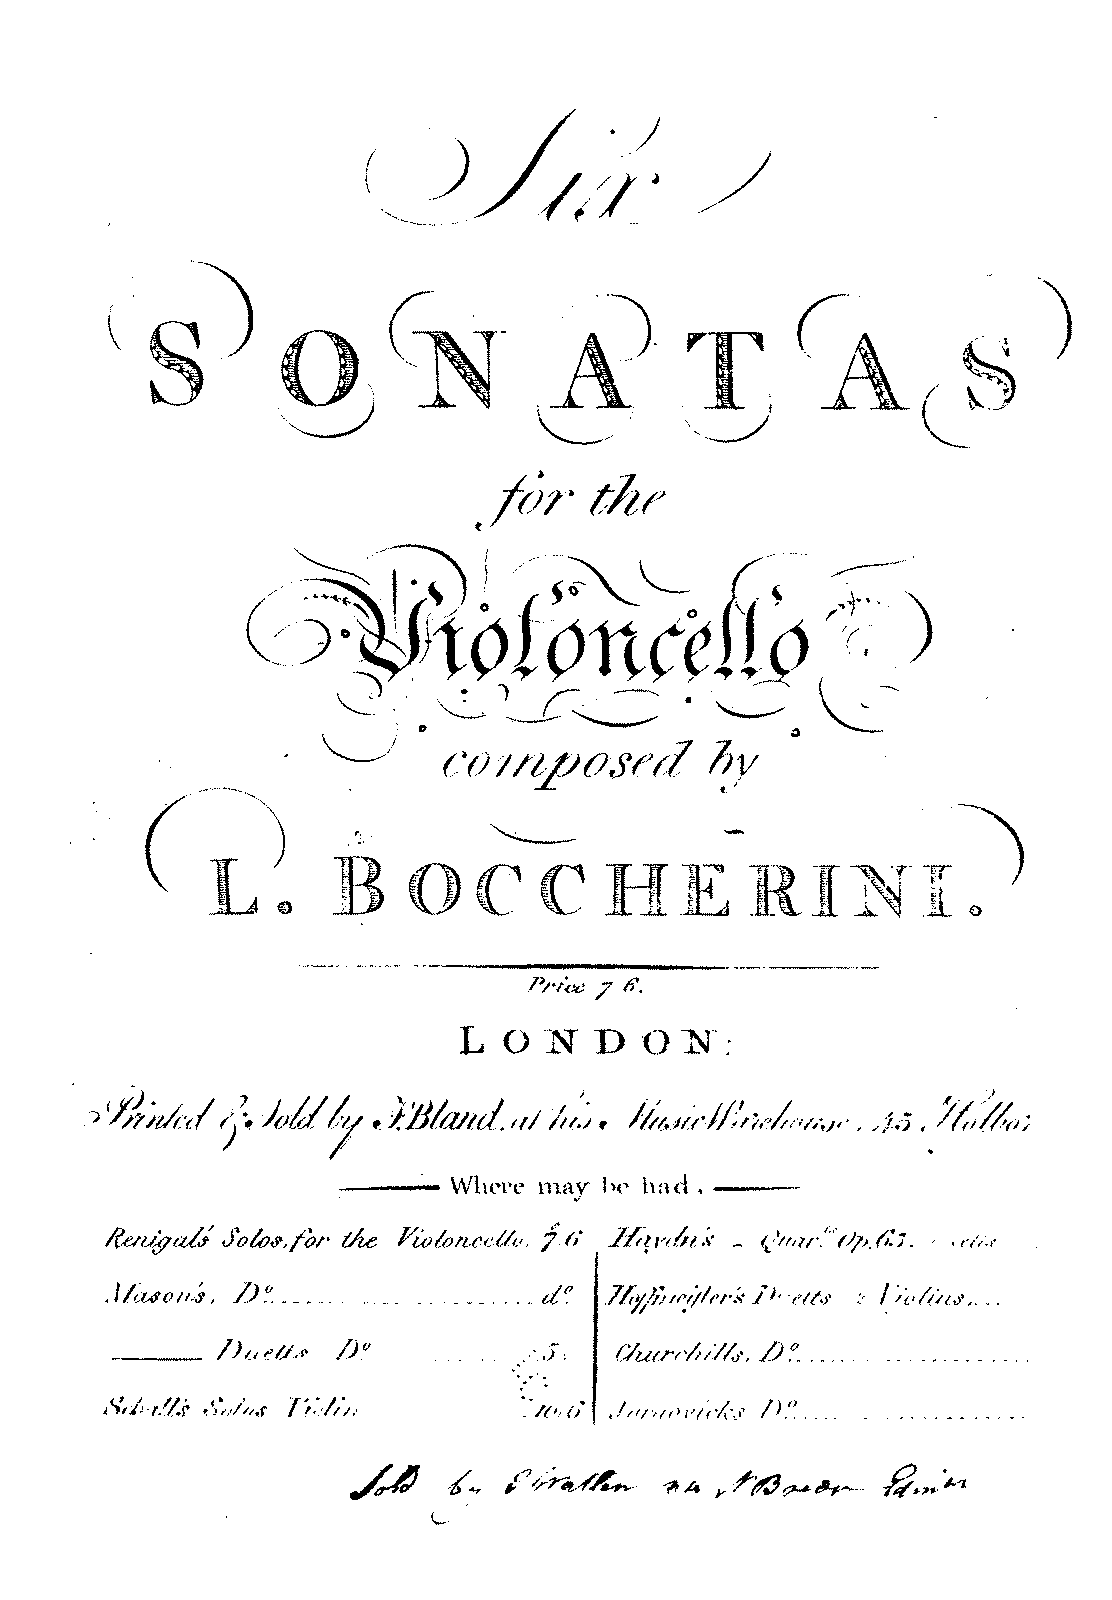 PMLP78530-Boccherini - Cello Sonata No1 in A Major (London).pdf